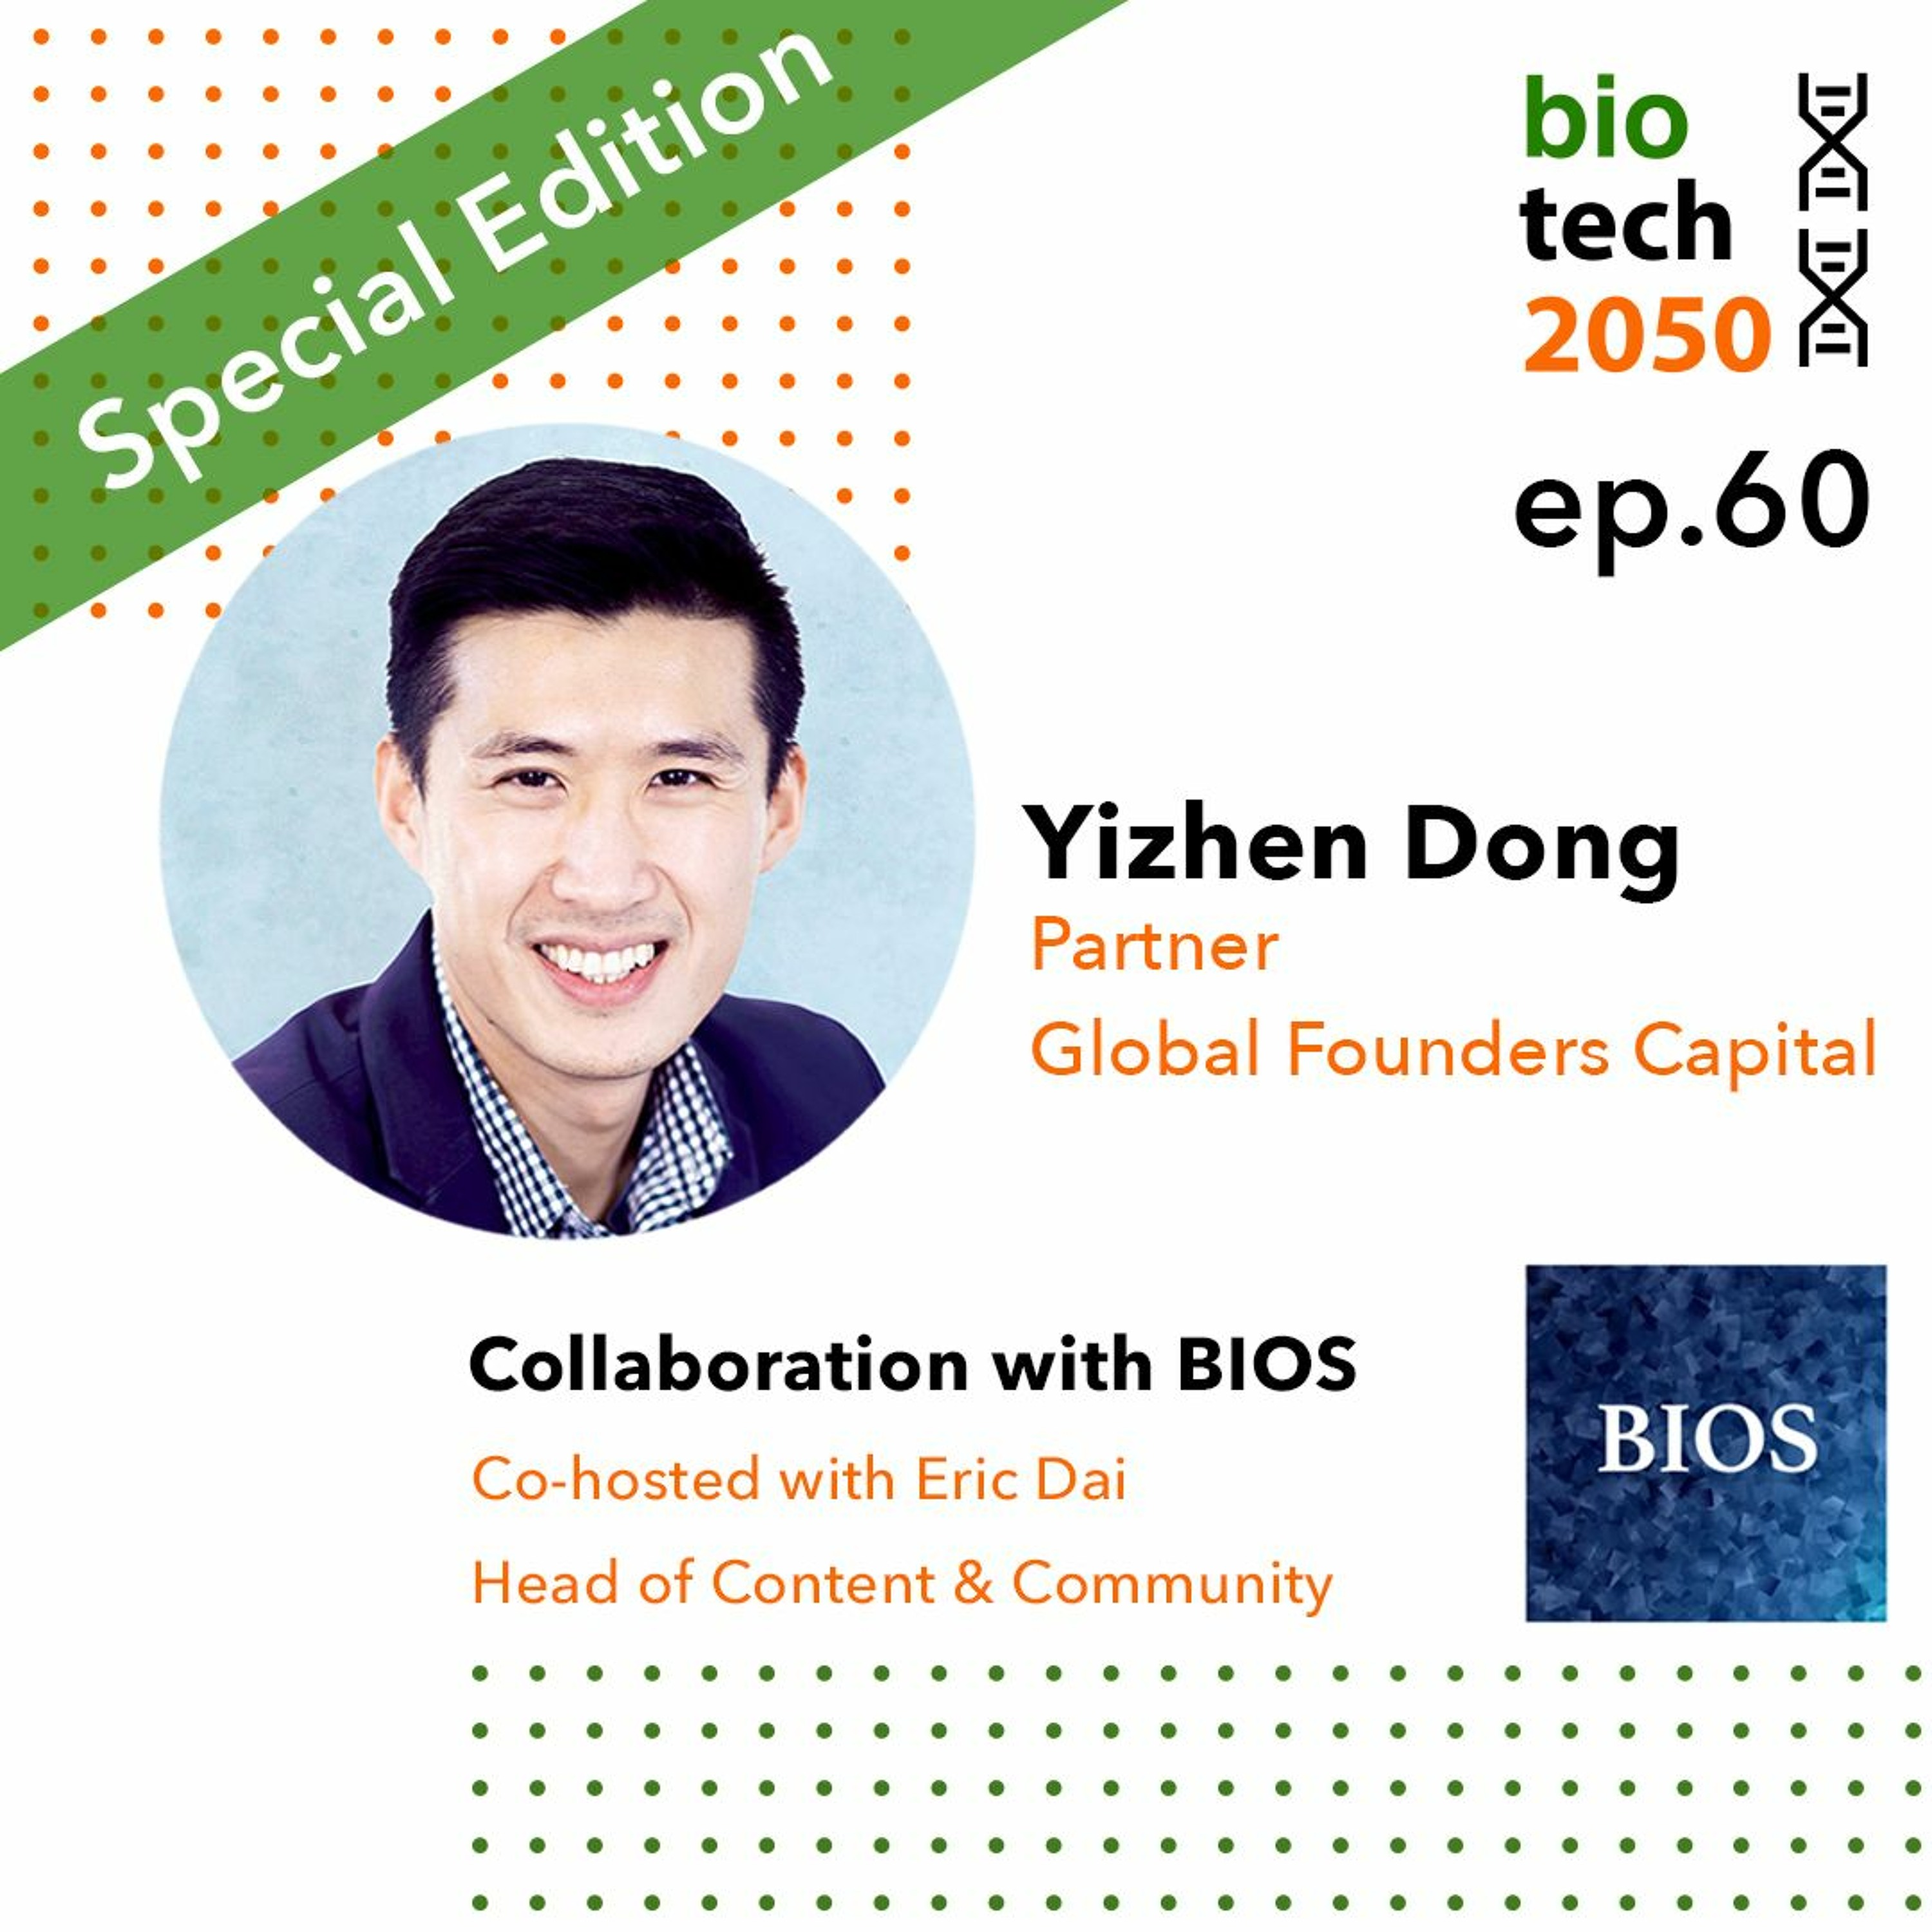 60. BIOS Edition: Investing in biotech and healthcare, Yizhen Dong, Partner, Global Founders Capital